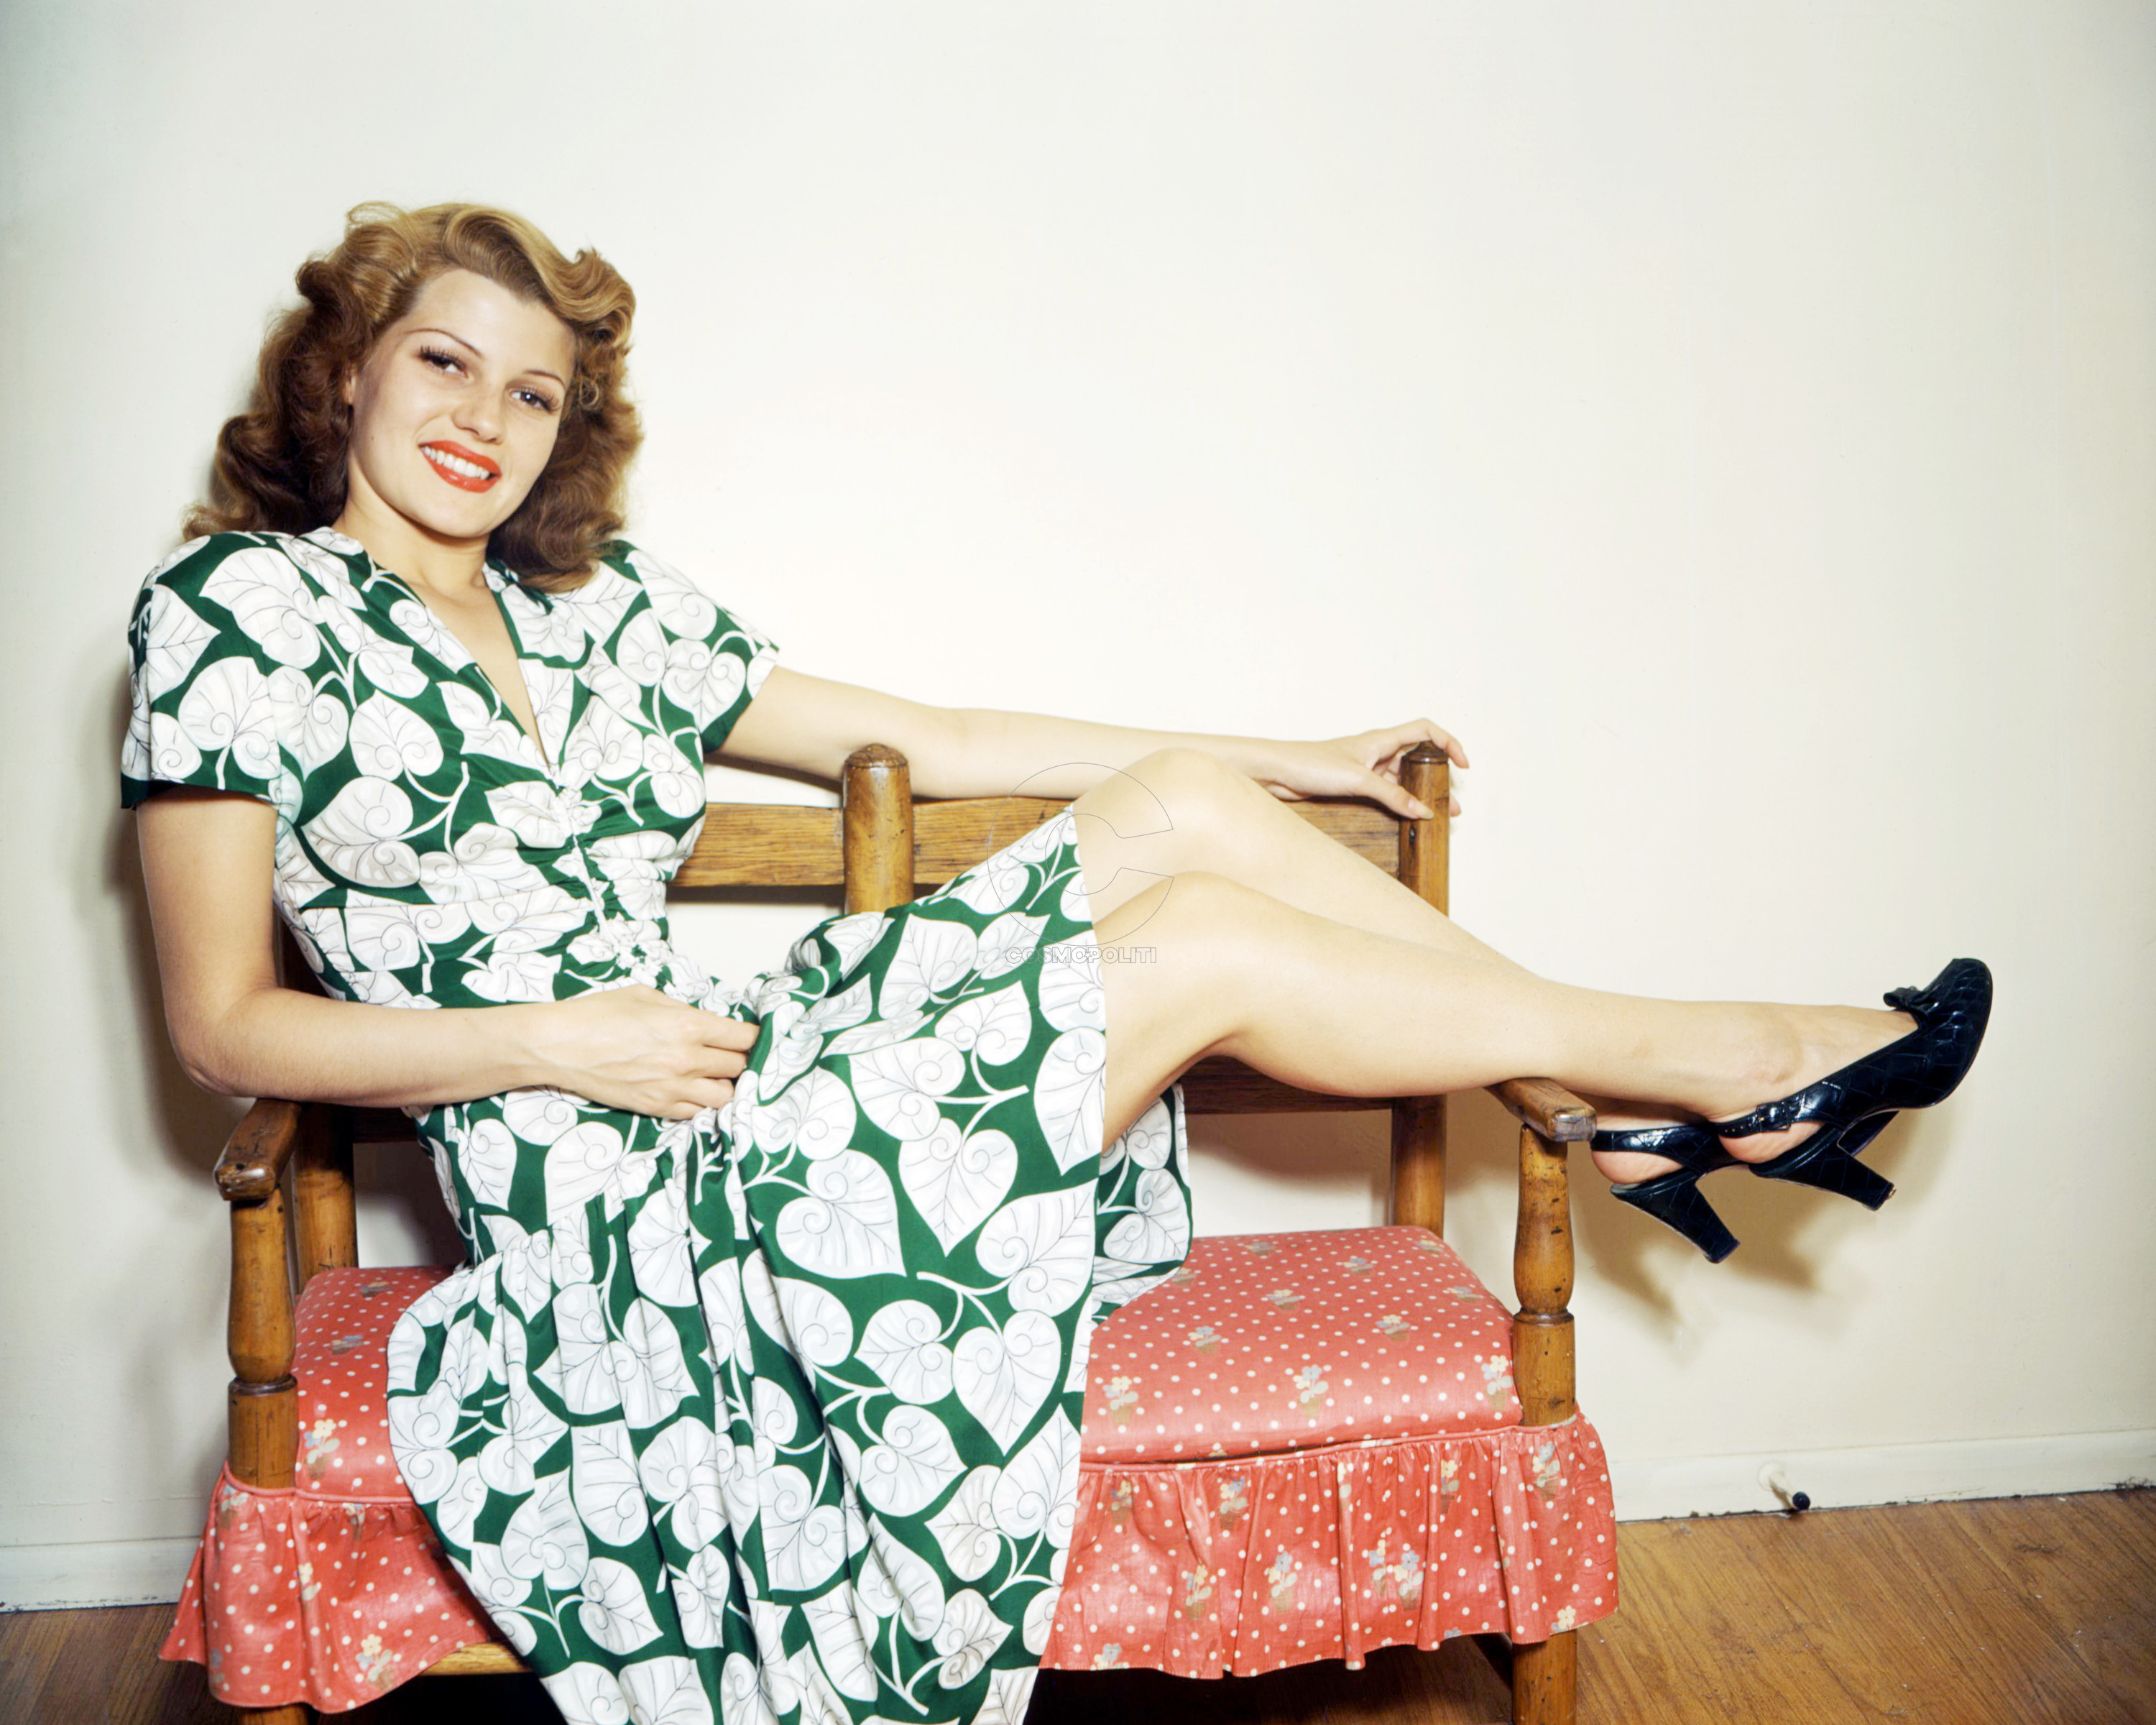 American actress Rita Hayworth (1918 - 1987) wearing a green and white, leaf-patterned dress and putting her feet up, circa 1945. (Photo by Silver Screen Collection/Getty Images)